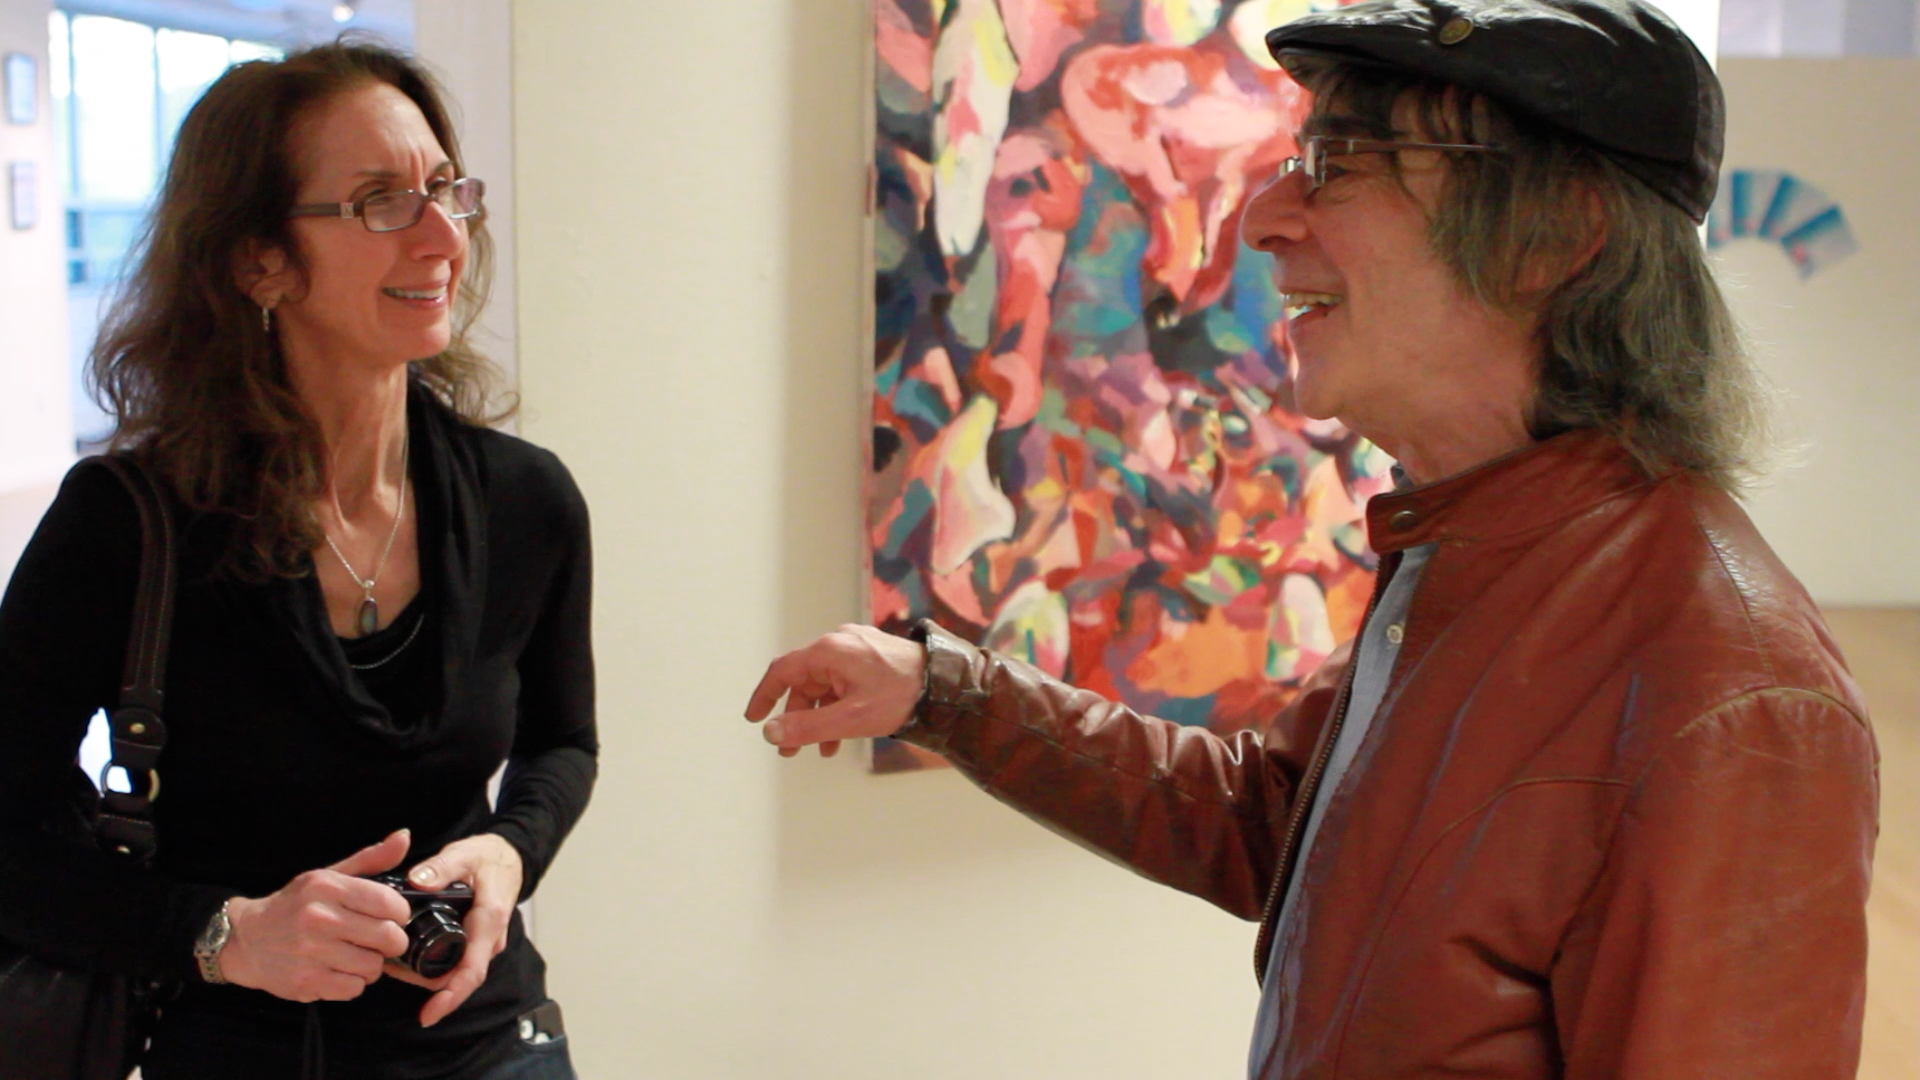 Leah Matuson talking with MassArt Film/Video Professor Saul Levine at Geena Matuson's (@geenamatuson) TransFIREmation Gallery Show & Installation in the MassArt Student Life Gallery, 2013.